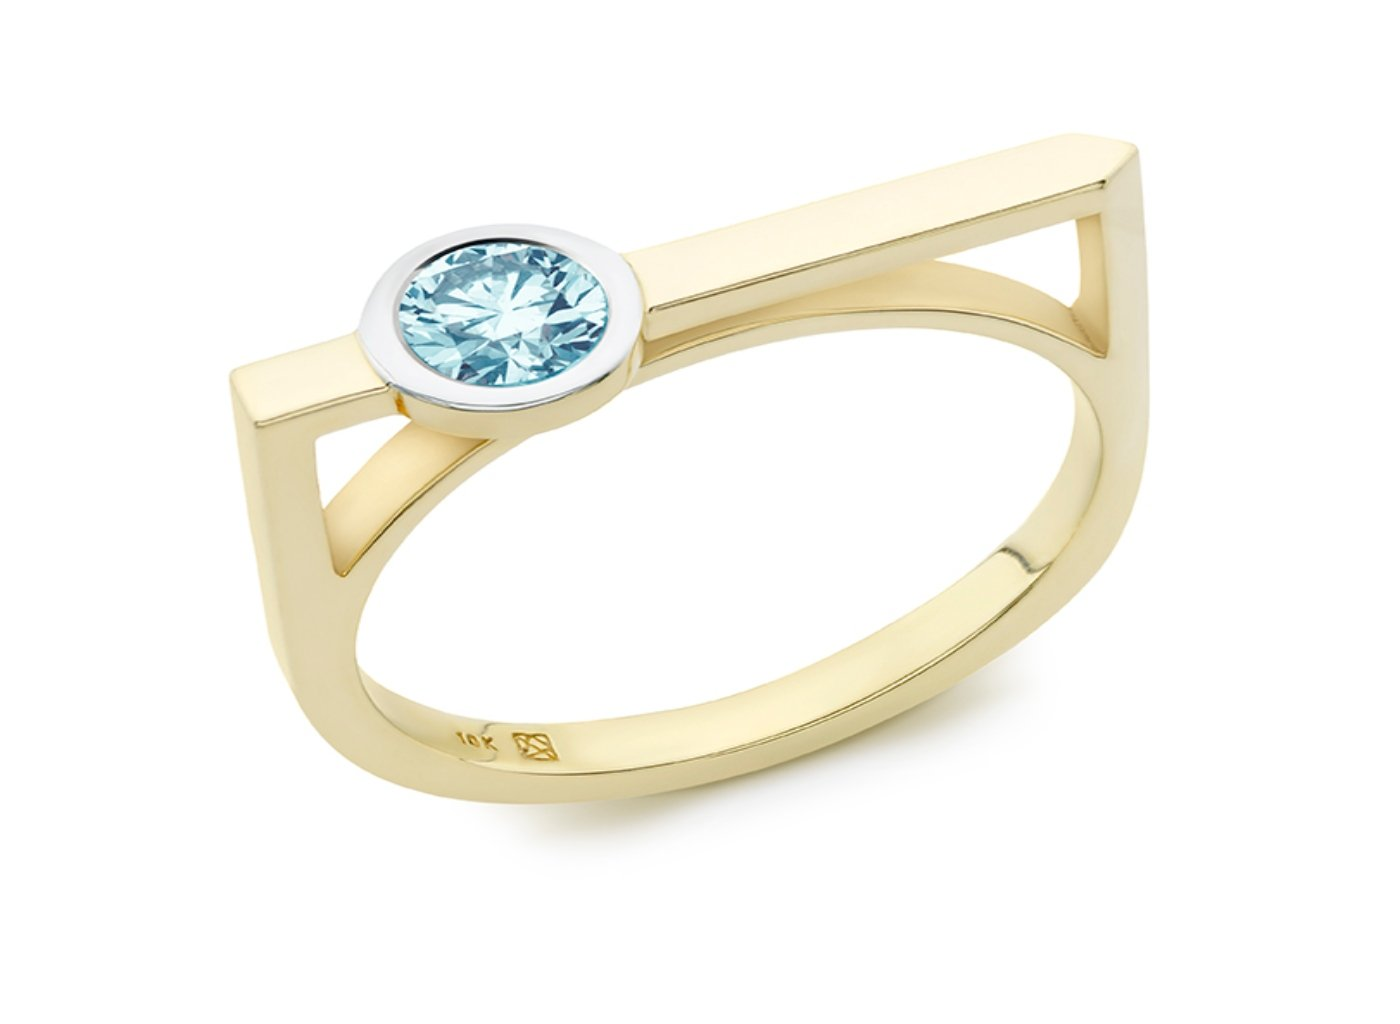 Side view of Solitaire linear 3/8 carat ring with blue diamond